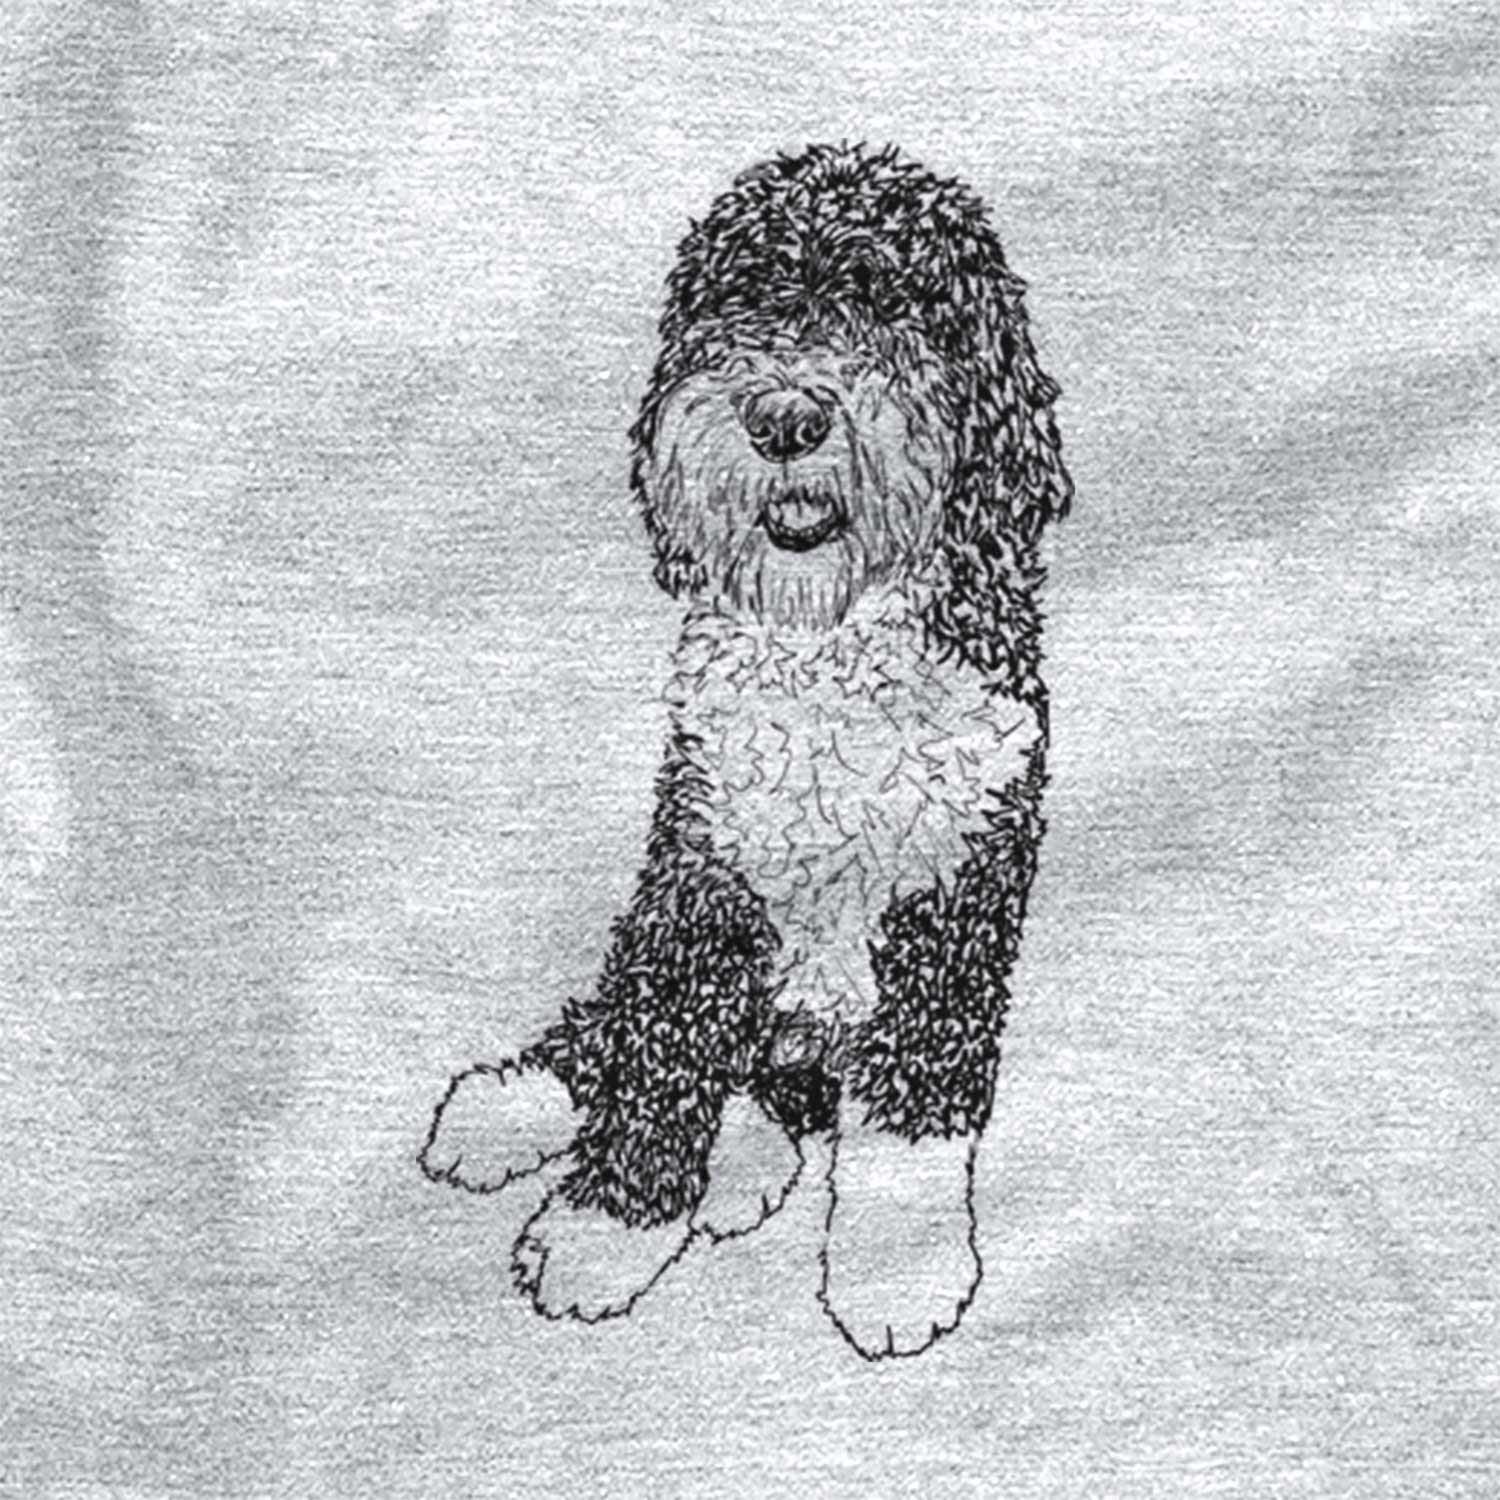 Doodled Whittaker the Sheepadoodle